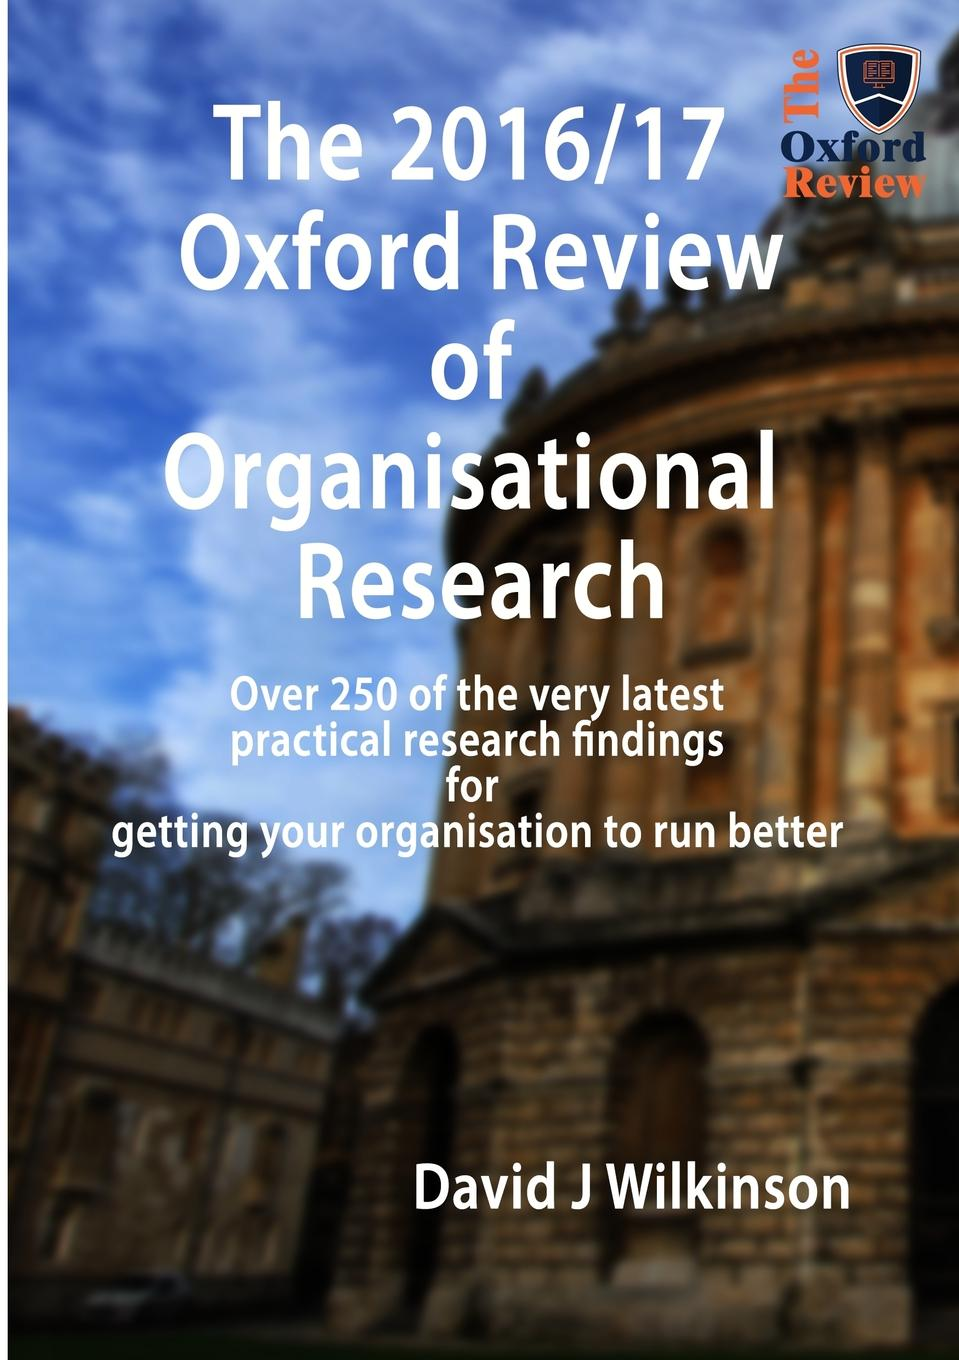 David J Wilkinson The Oxford Review Annual 2016/17